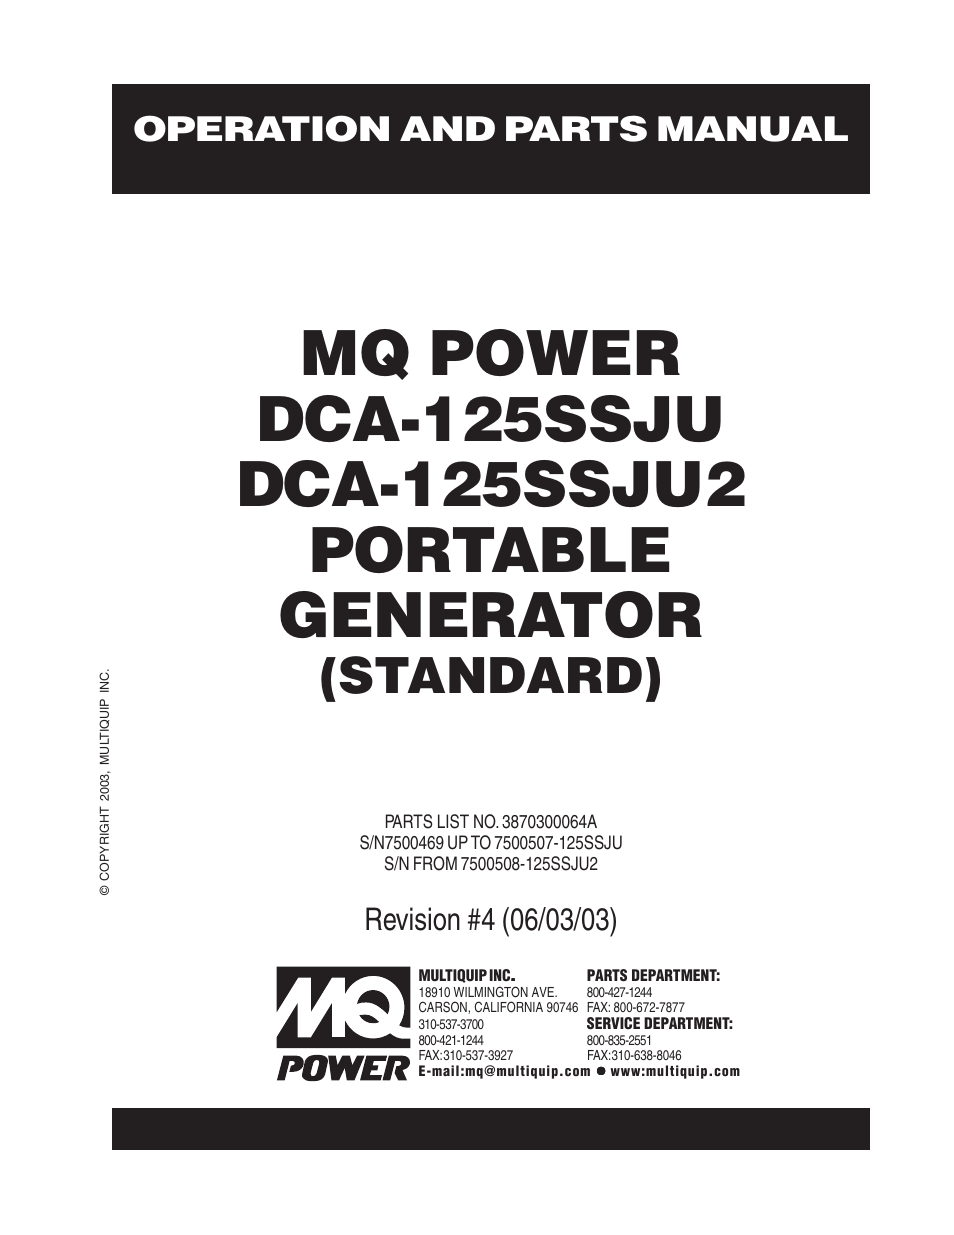 Multiquip MQ Power Portable Generator (Standard) DCA